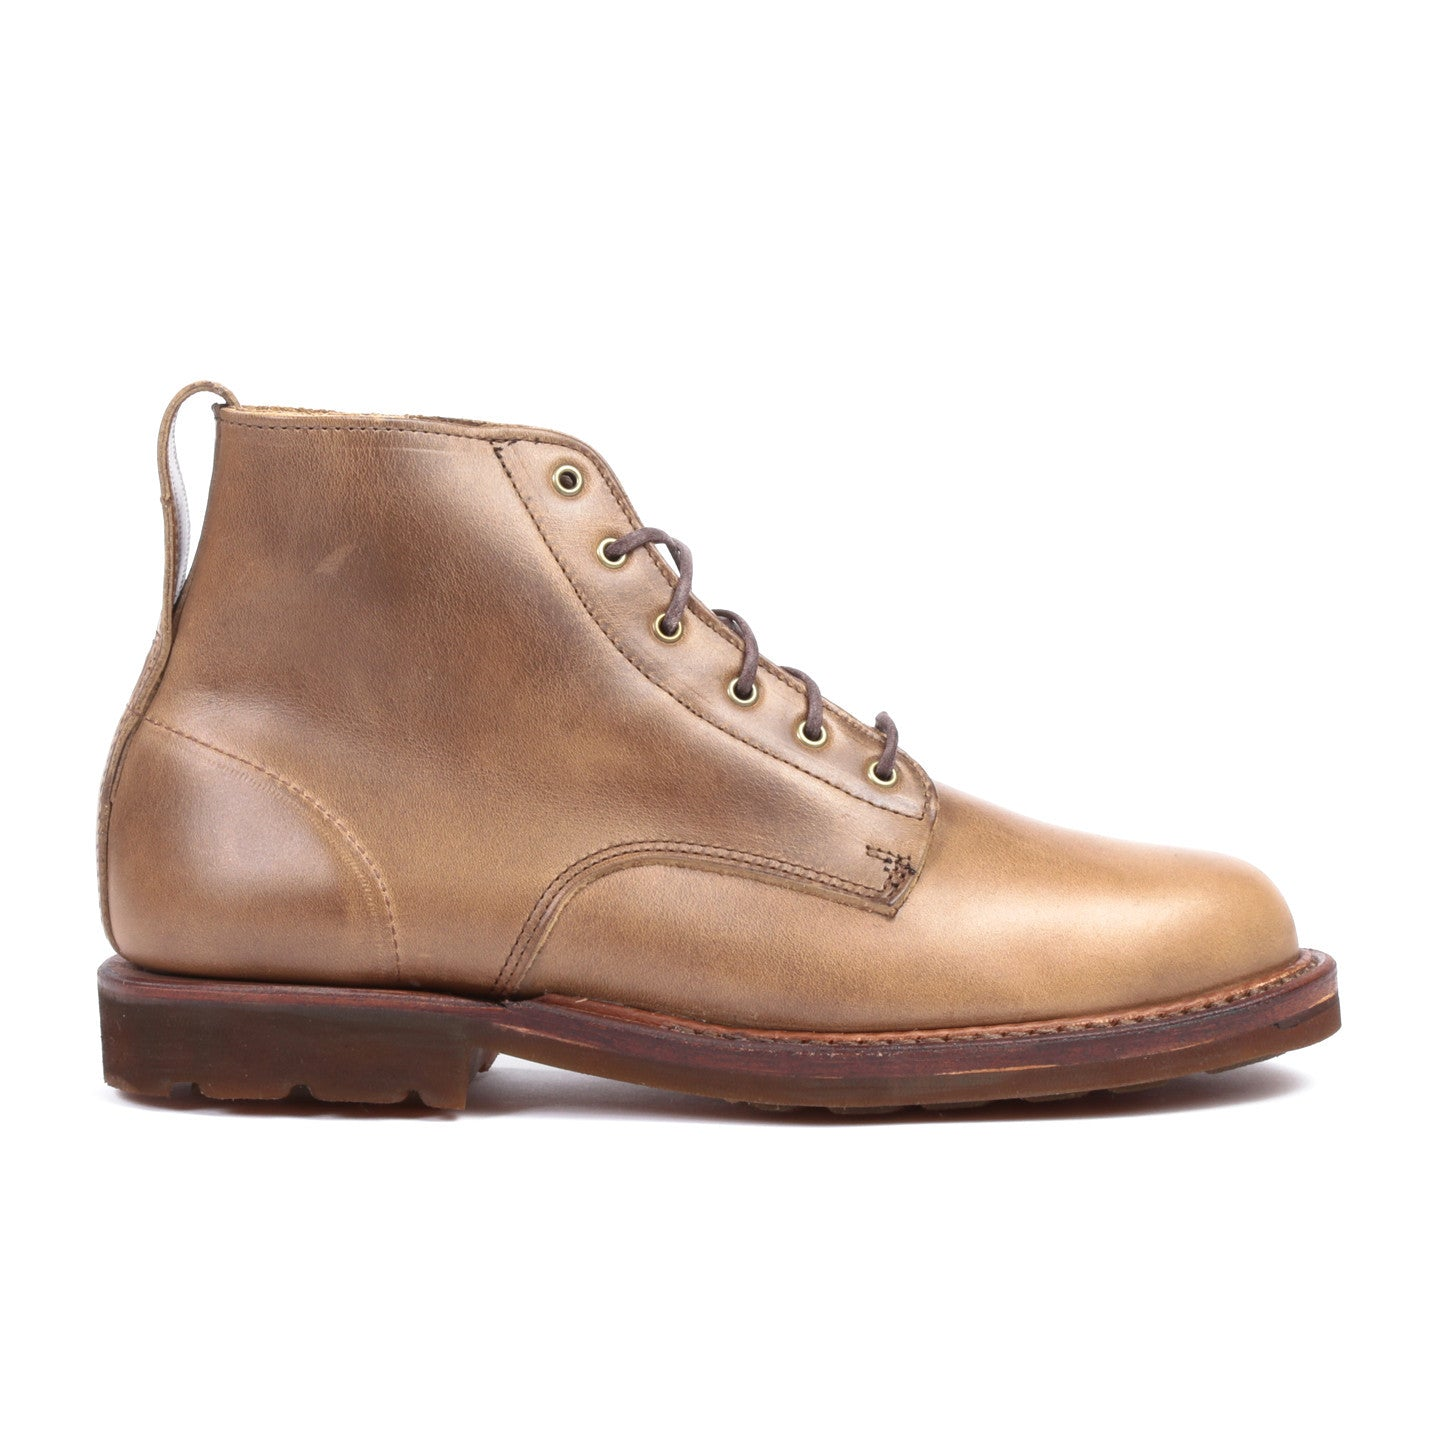 RANCOURT TODAY BLAKE BOOT NATURAL CXL